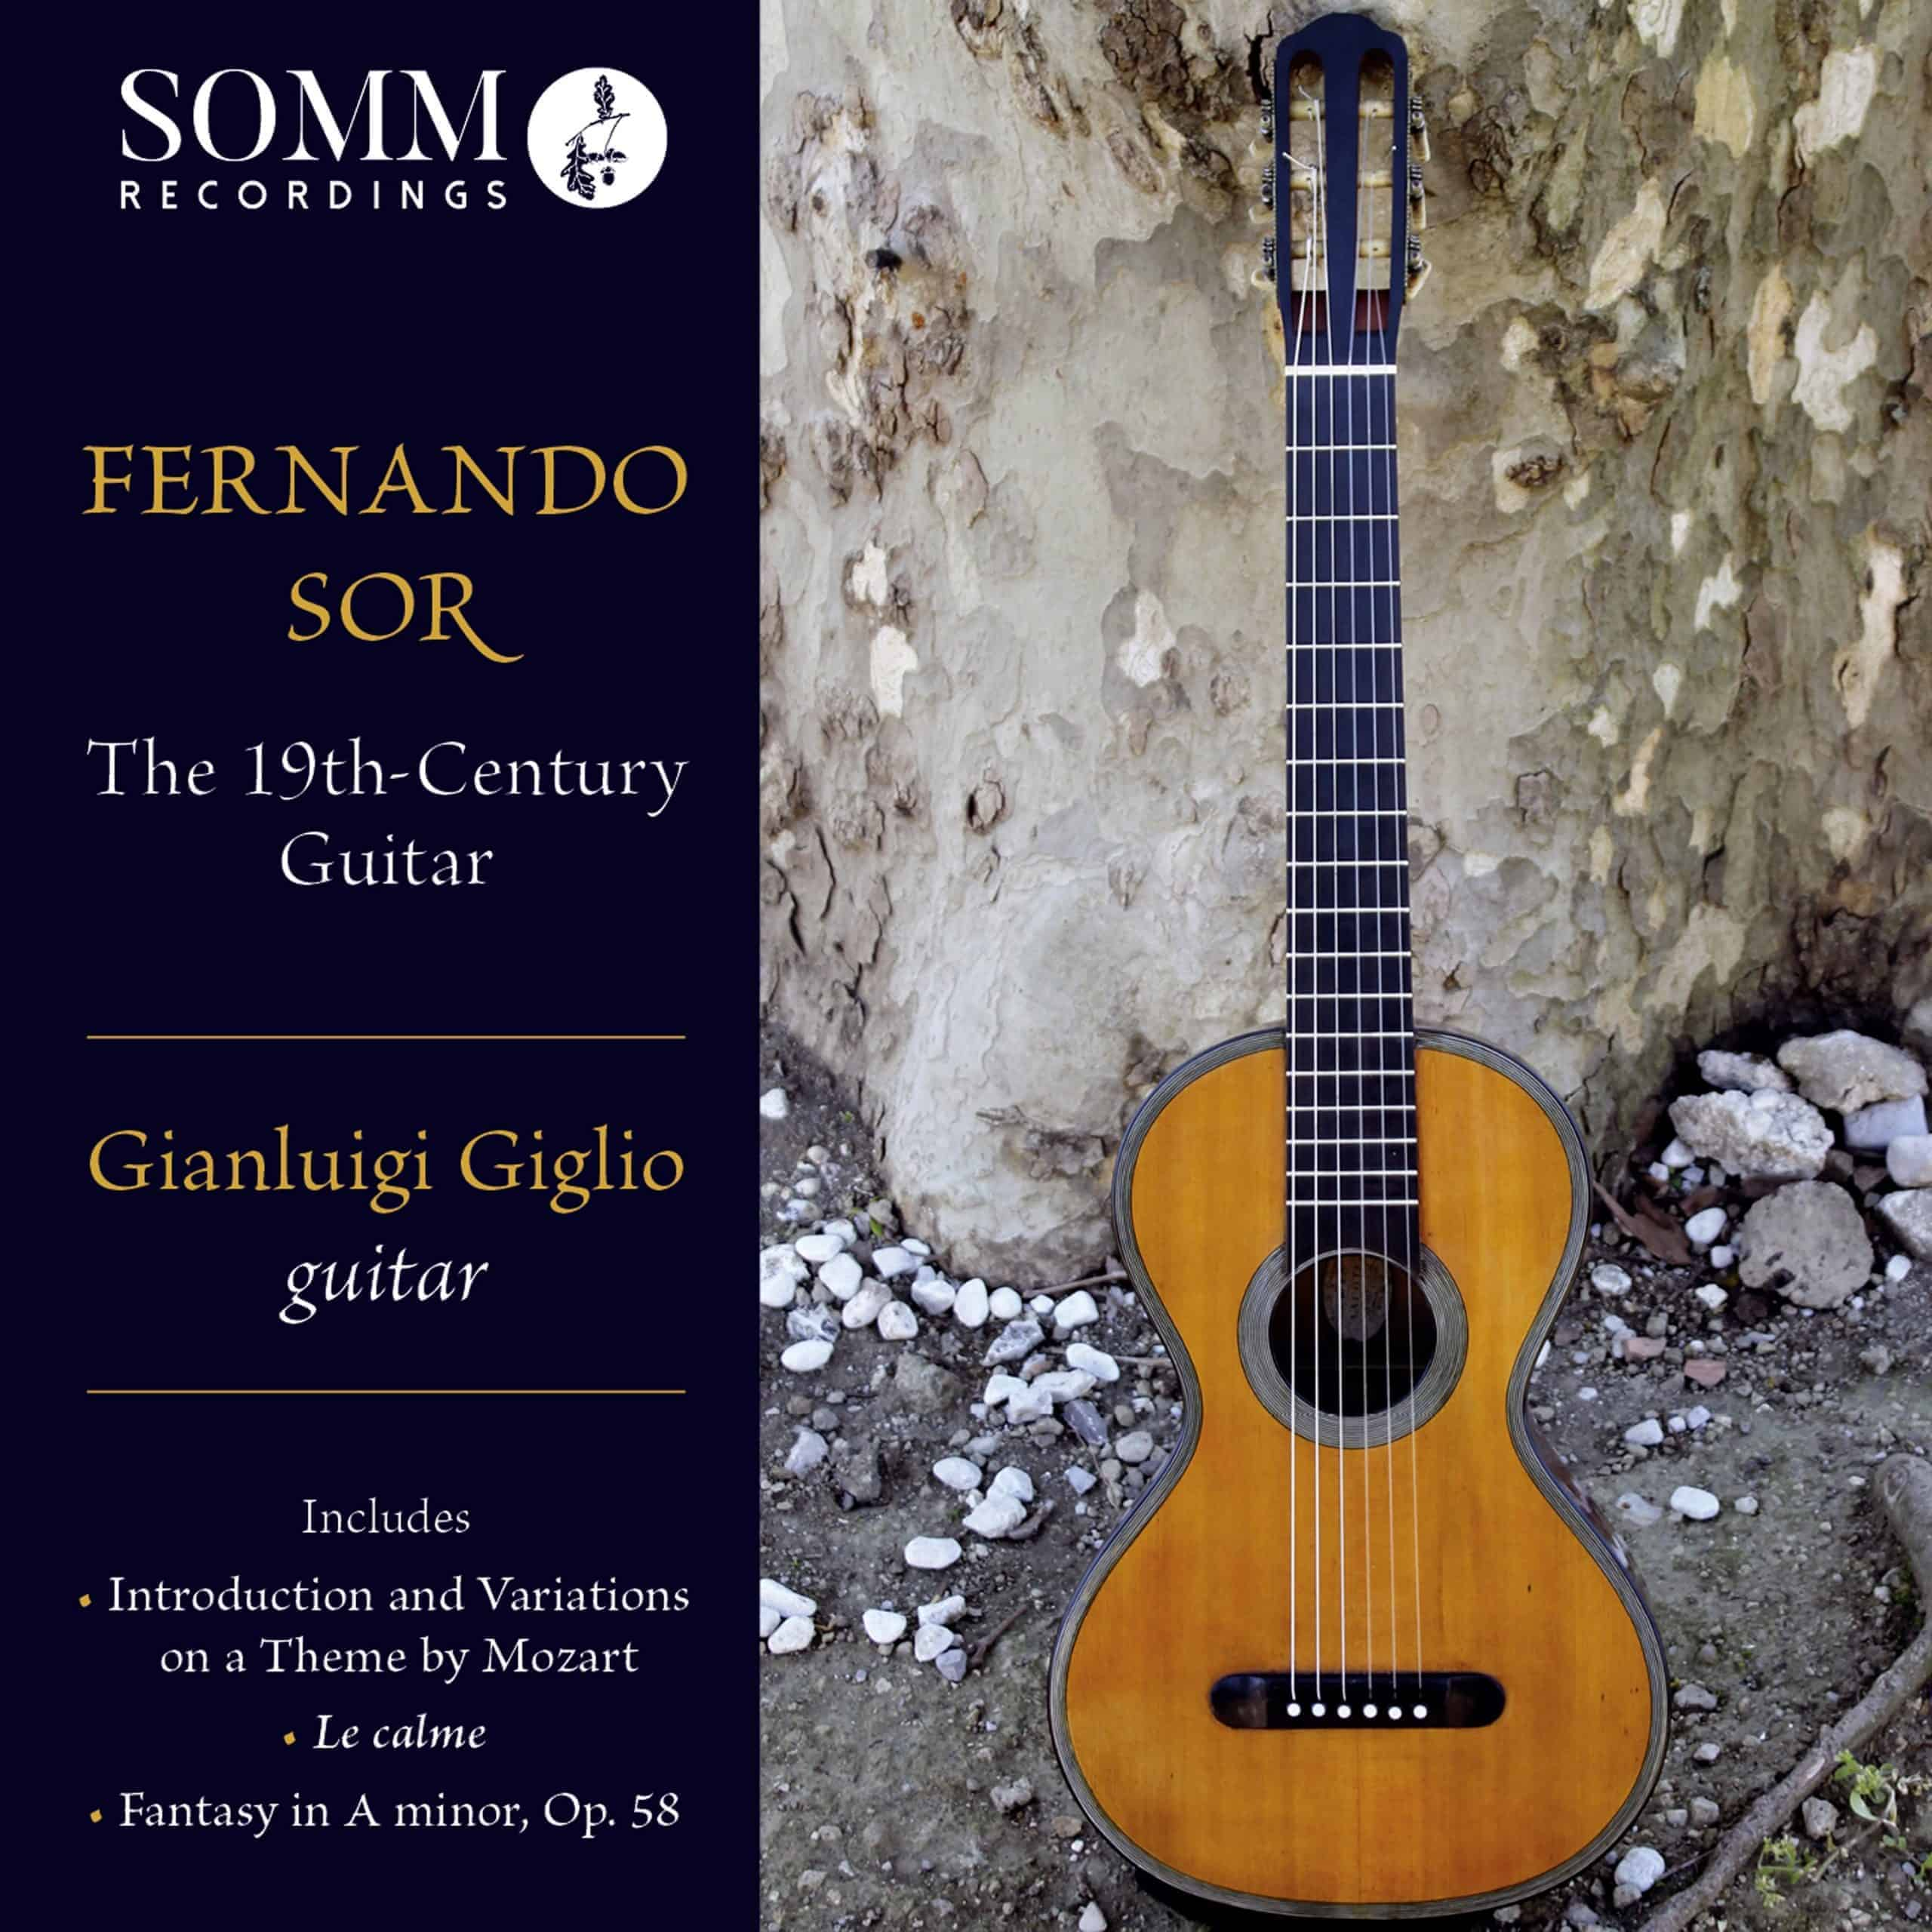 Fernando Sor: The 19th-Century Guitar